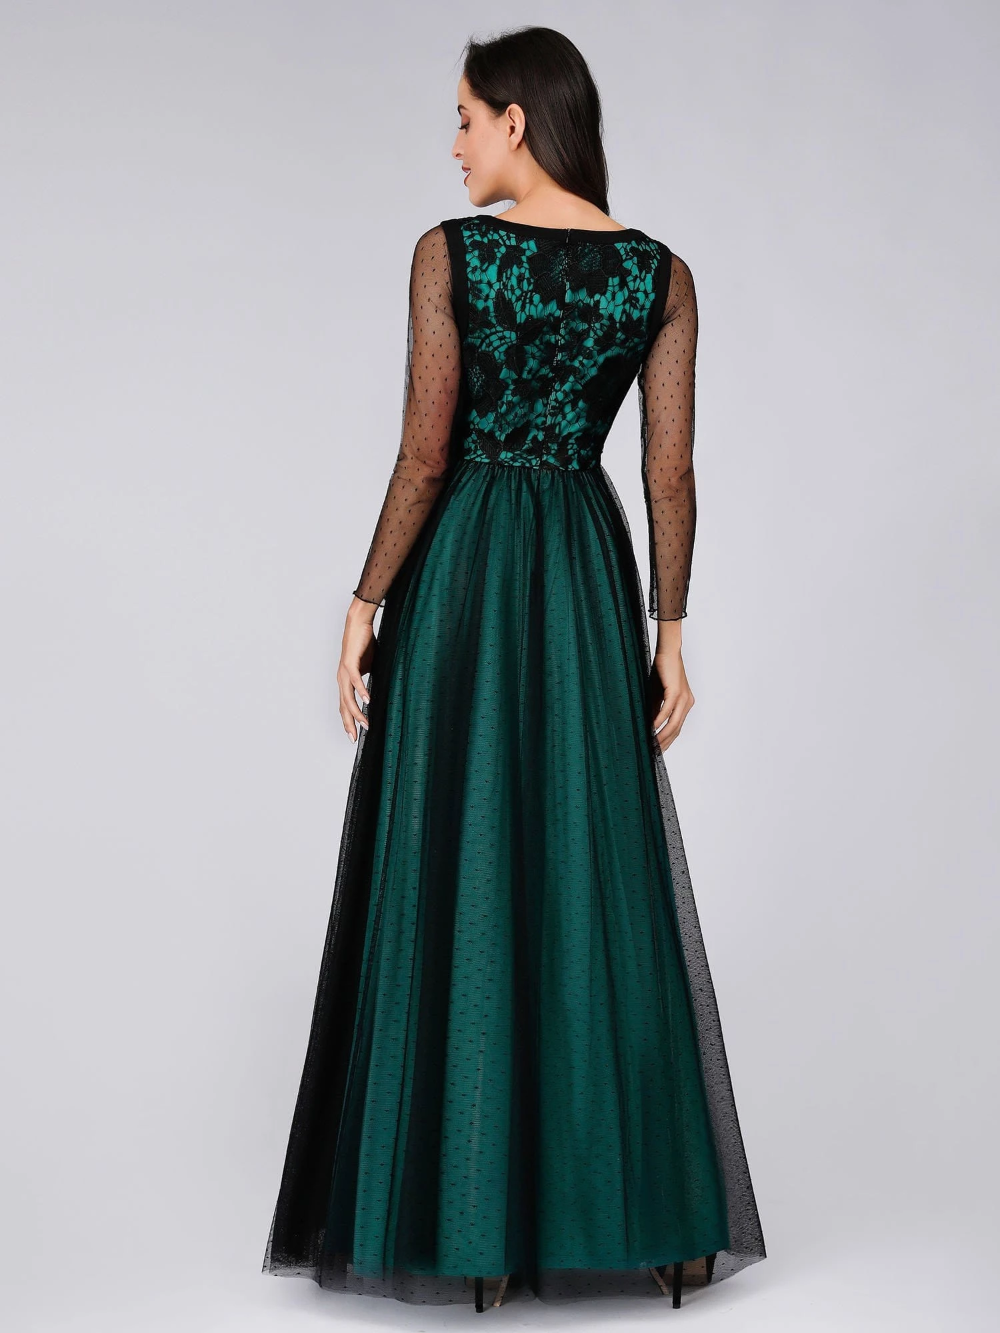 Long Sleeves With Embroidered Lace Dark Green Women Wedding Guest Dresses Women Wedding Guest Dresses Green Wedding Dresses Sheer Prom Dress [ 1333 x 1000 Pixel ]